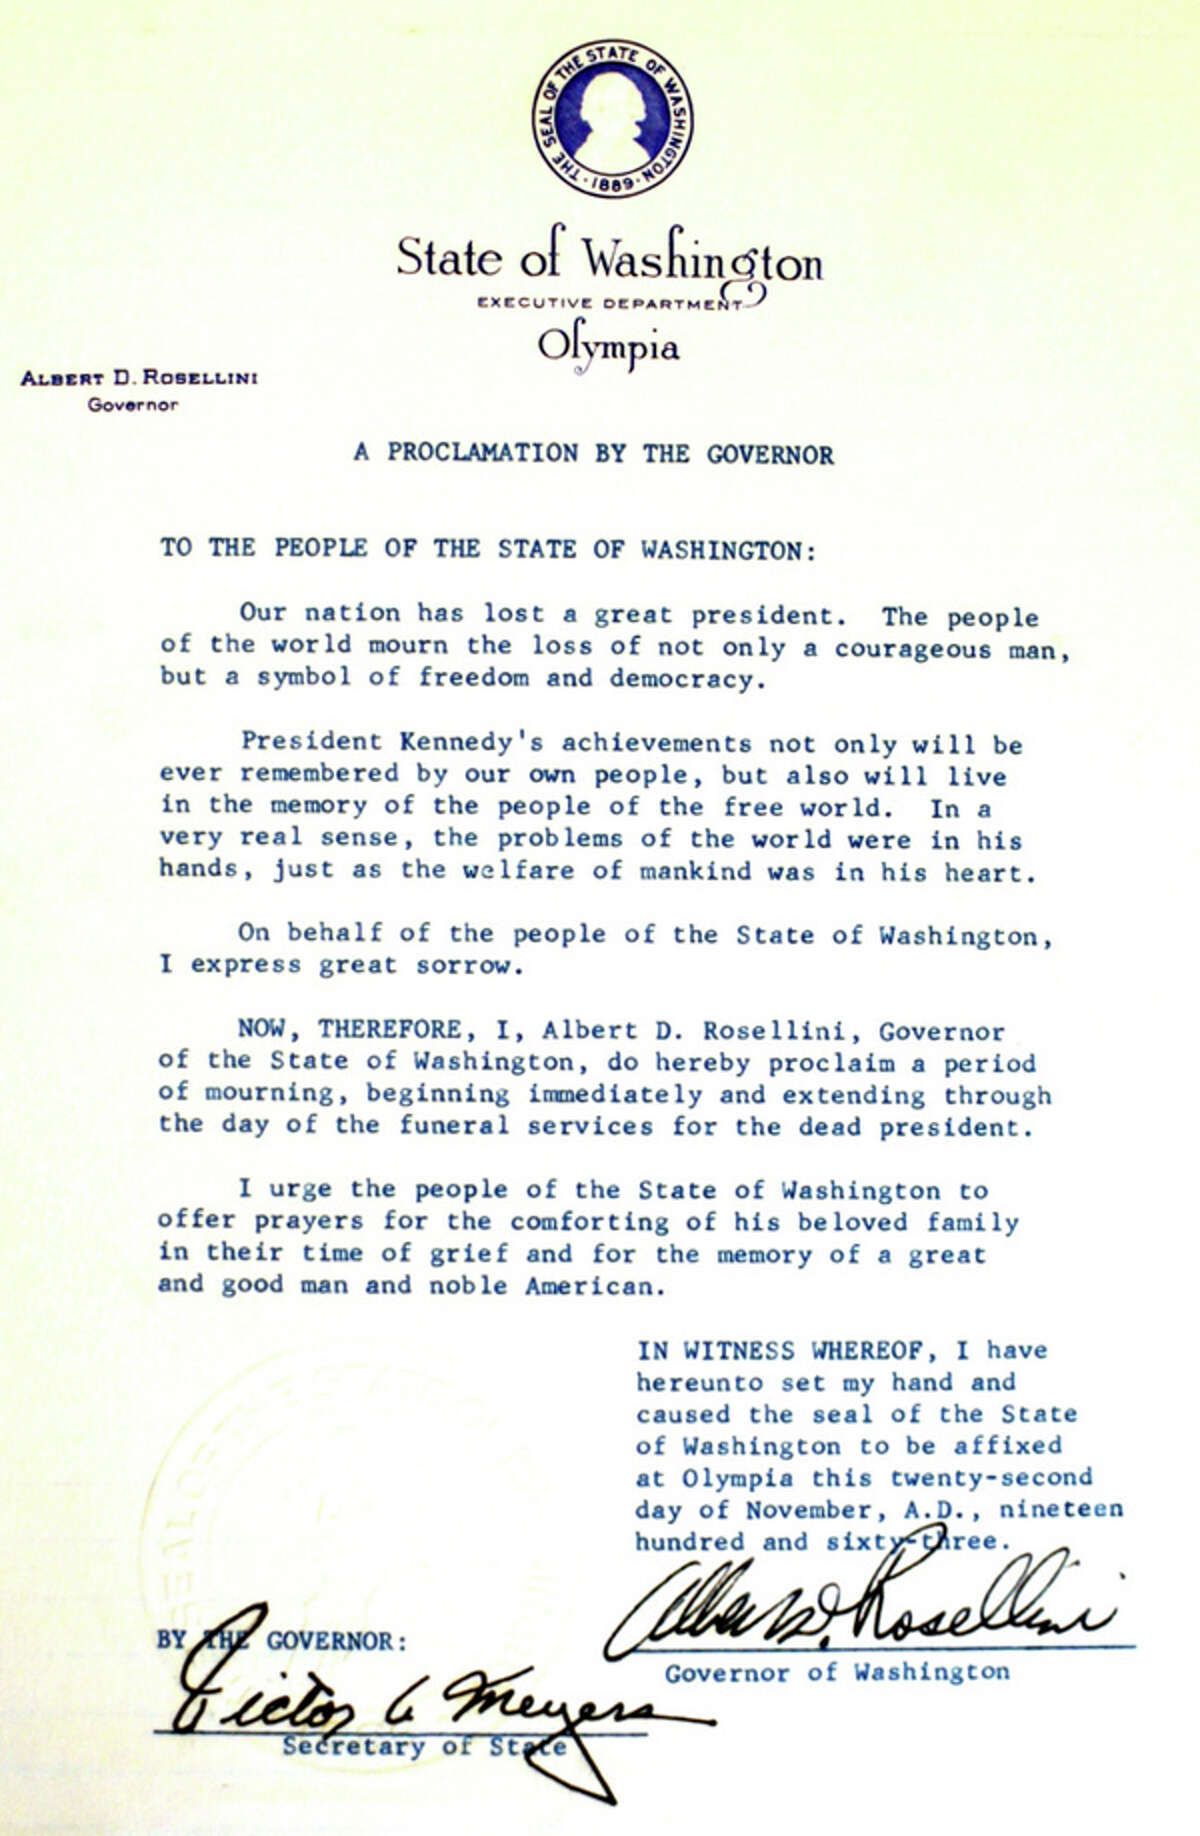 Gov. Albert Rosellini issued this proclamation on Nov. 22, 1963, calling for a period of mourning in the state.